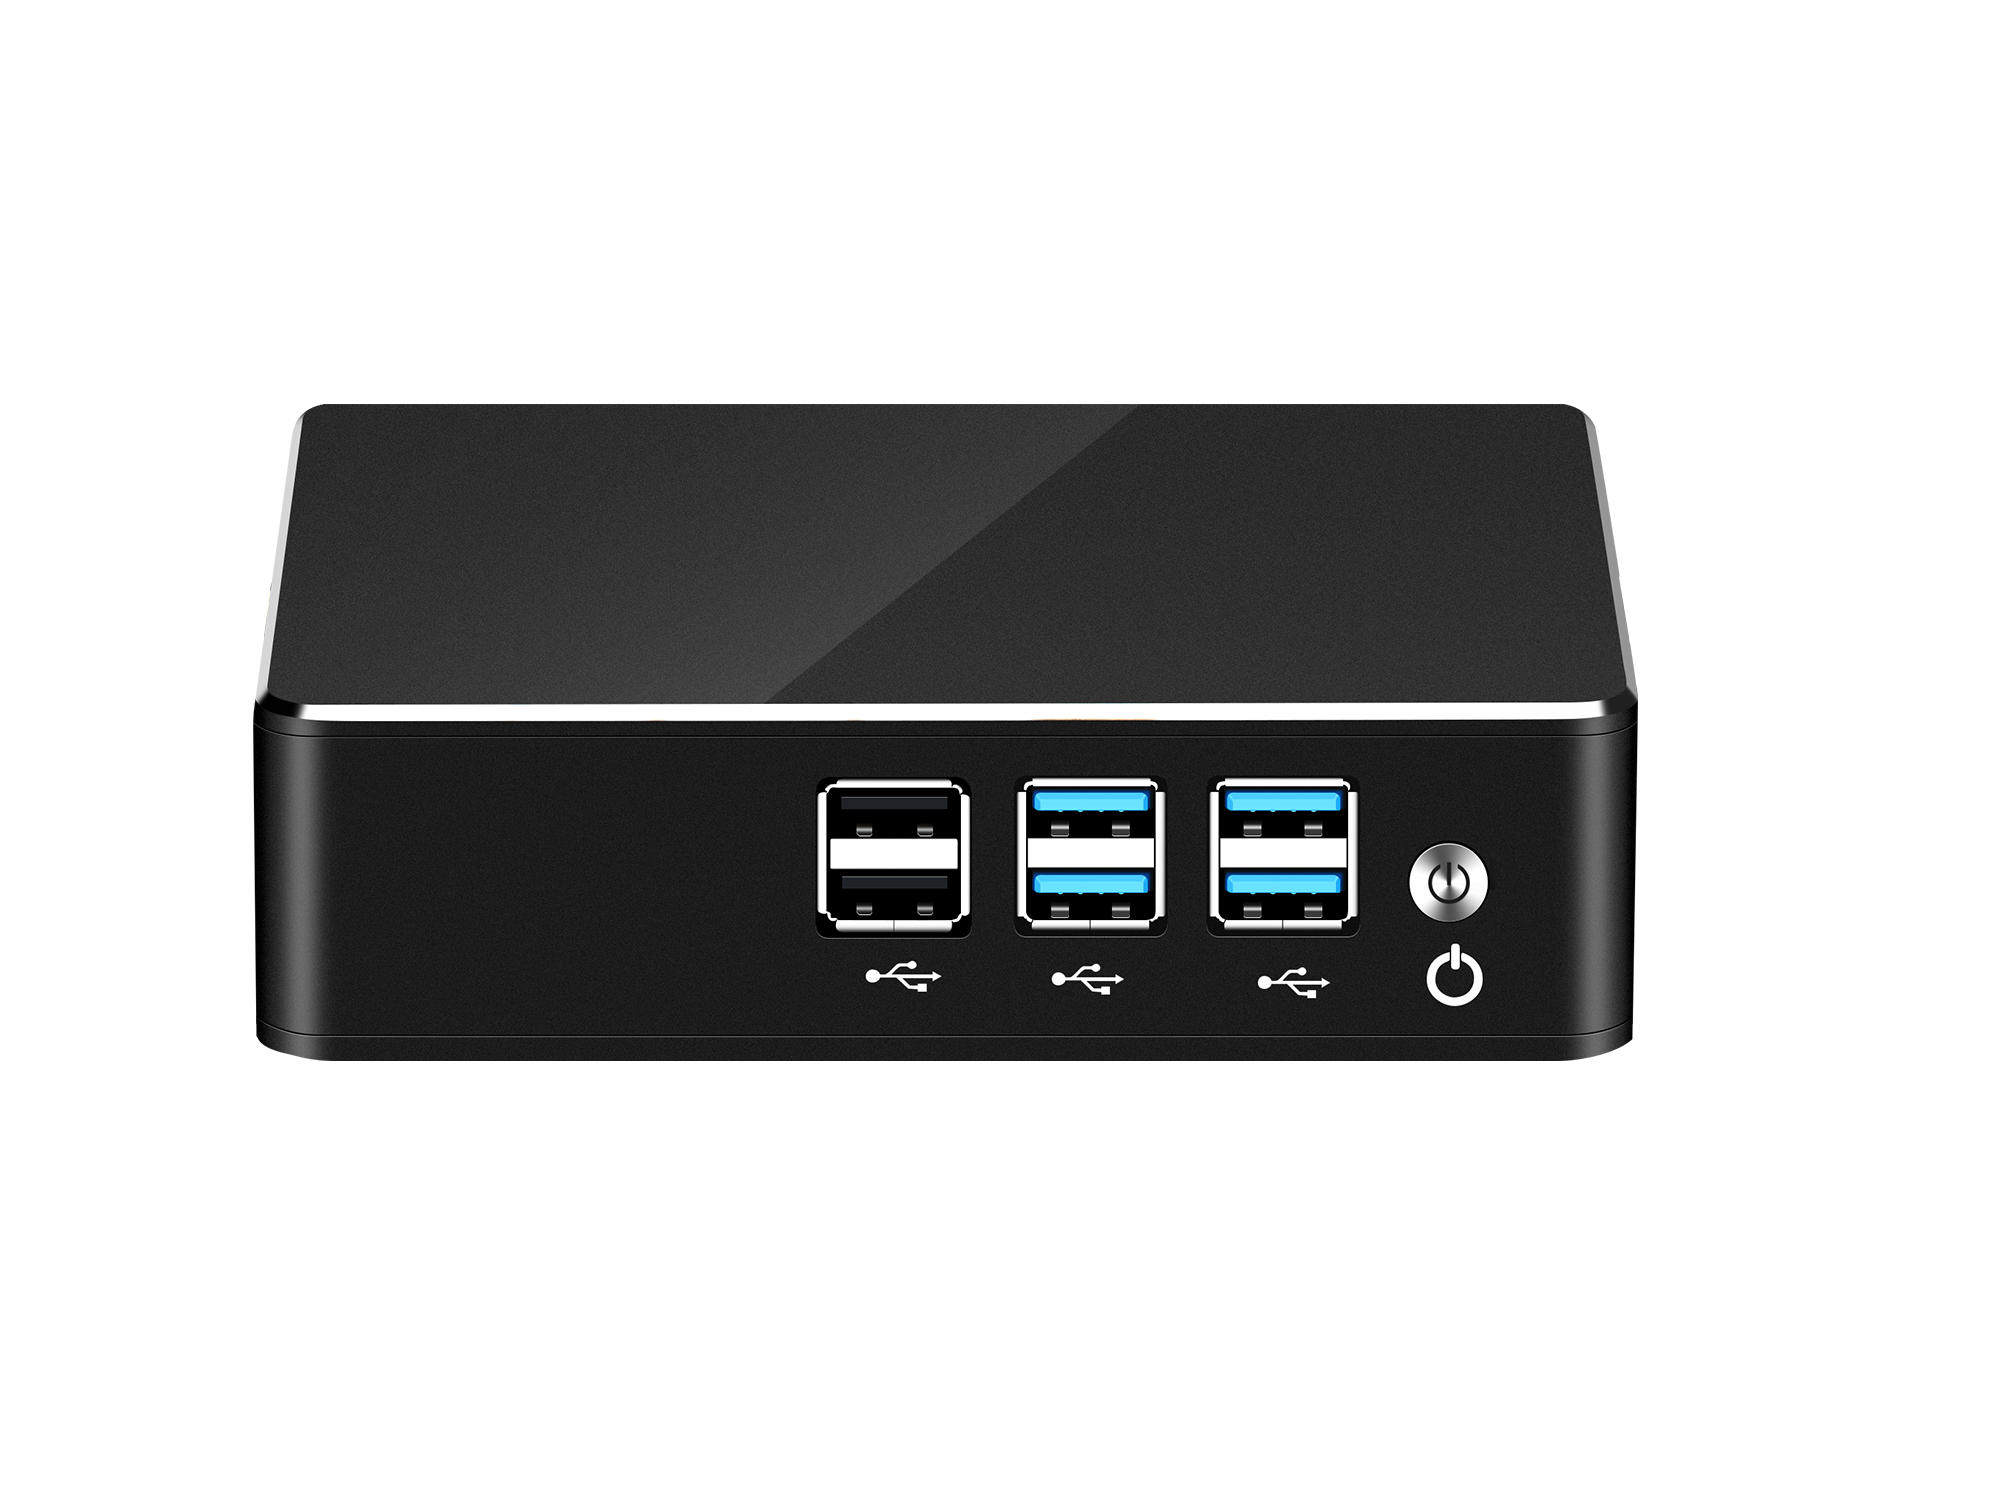 XCY Mini Pc X35 I5 8250U Quad Core Barebone Intel HD Graphics 620 Windows 10 DDR4 4K 300M WiFi